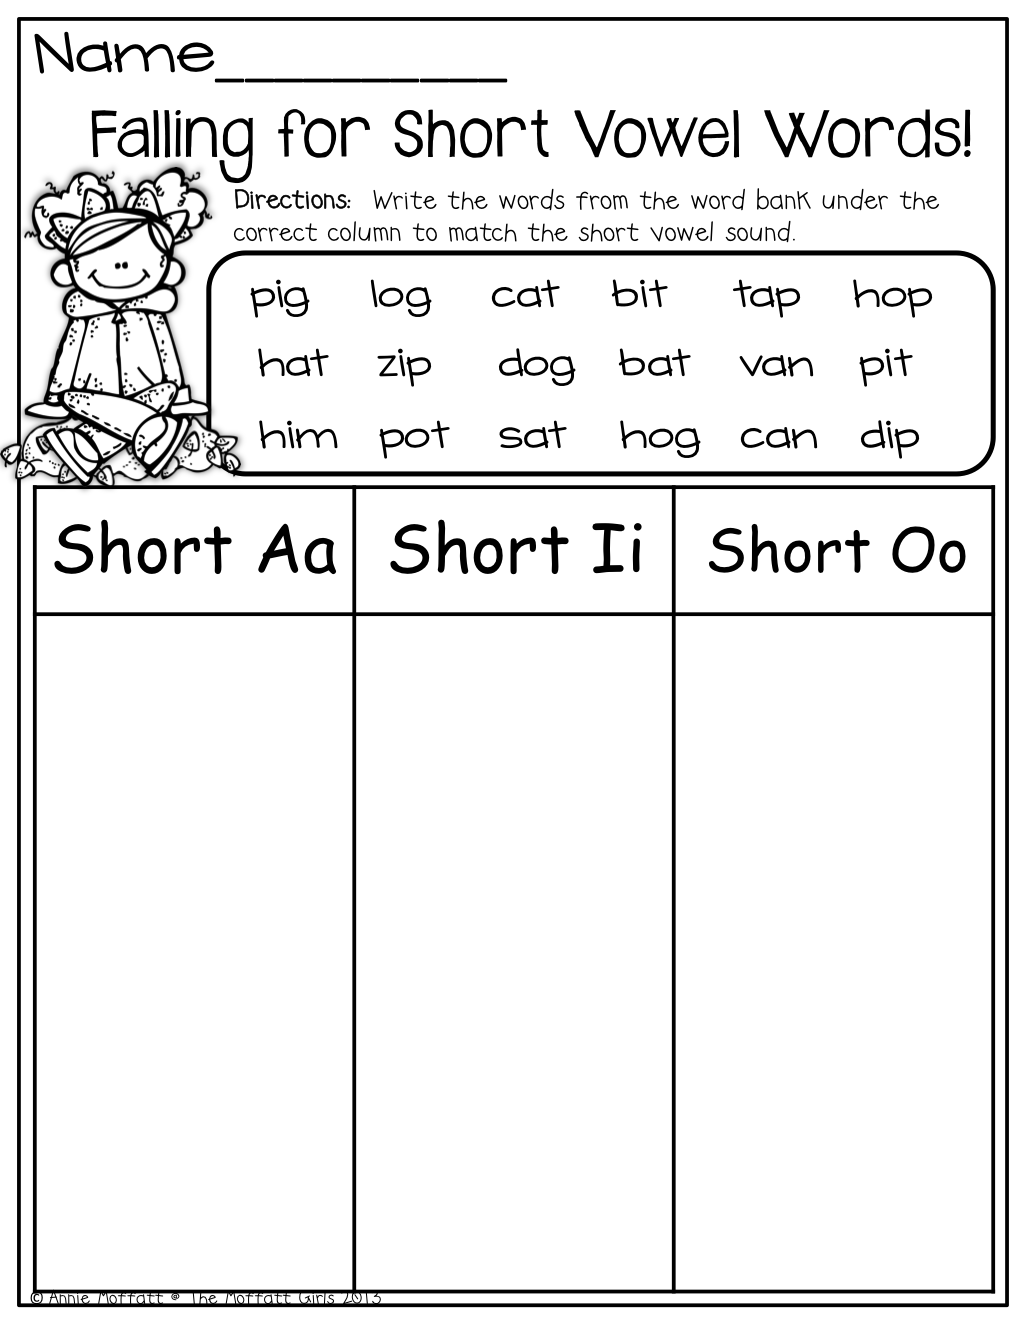 03a27144afe1de84f1a07d007eac5d0c Vowels Worksheets For St Grade on math homework for 1st grade, have fun teaching 1st grade, vowel digraph worksheets 1st grade, r controlled worksheets 2nd grade, writing prompts for 1st grade, short e poems 1st grade, printable math sheets for 1st grade, easy math for 1st grade, reading passages for 1st grade, fill in the blank worksheets 1st grade, long o worksheets first grade, long and short vowel worksheets for 2nd grade, math problems for 1st grade, challenge words for 1st grade, oo worksheets for second grade, reading practice for 1st grade, r controlled vowels 1st grade, short e worksheets 1st grade,